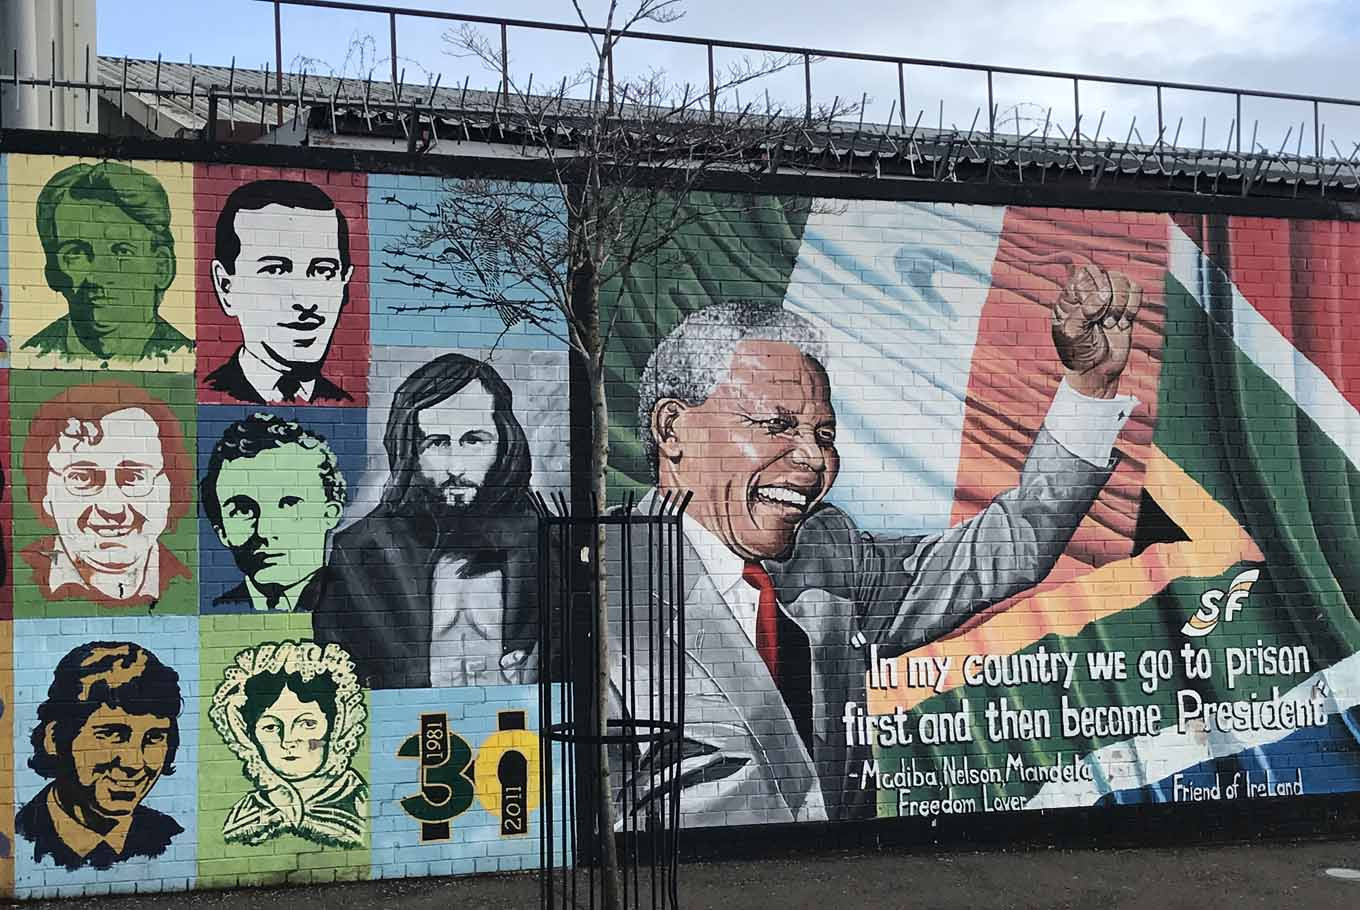 A mural depicting Nelson Mandela